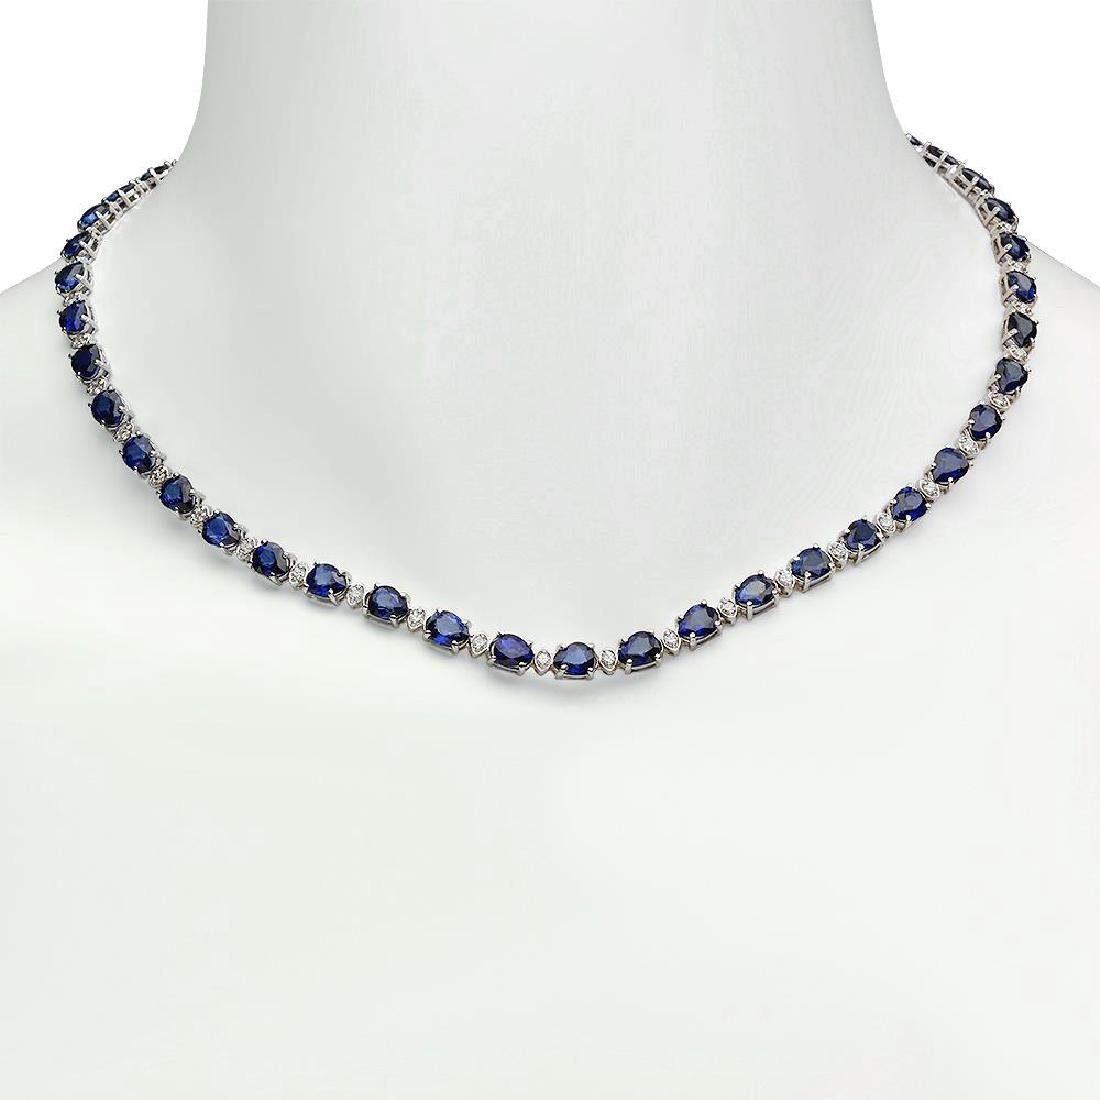 14K Gold 31.39ct Sapphire 1.52ct Diamond Necklace